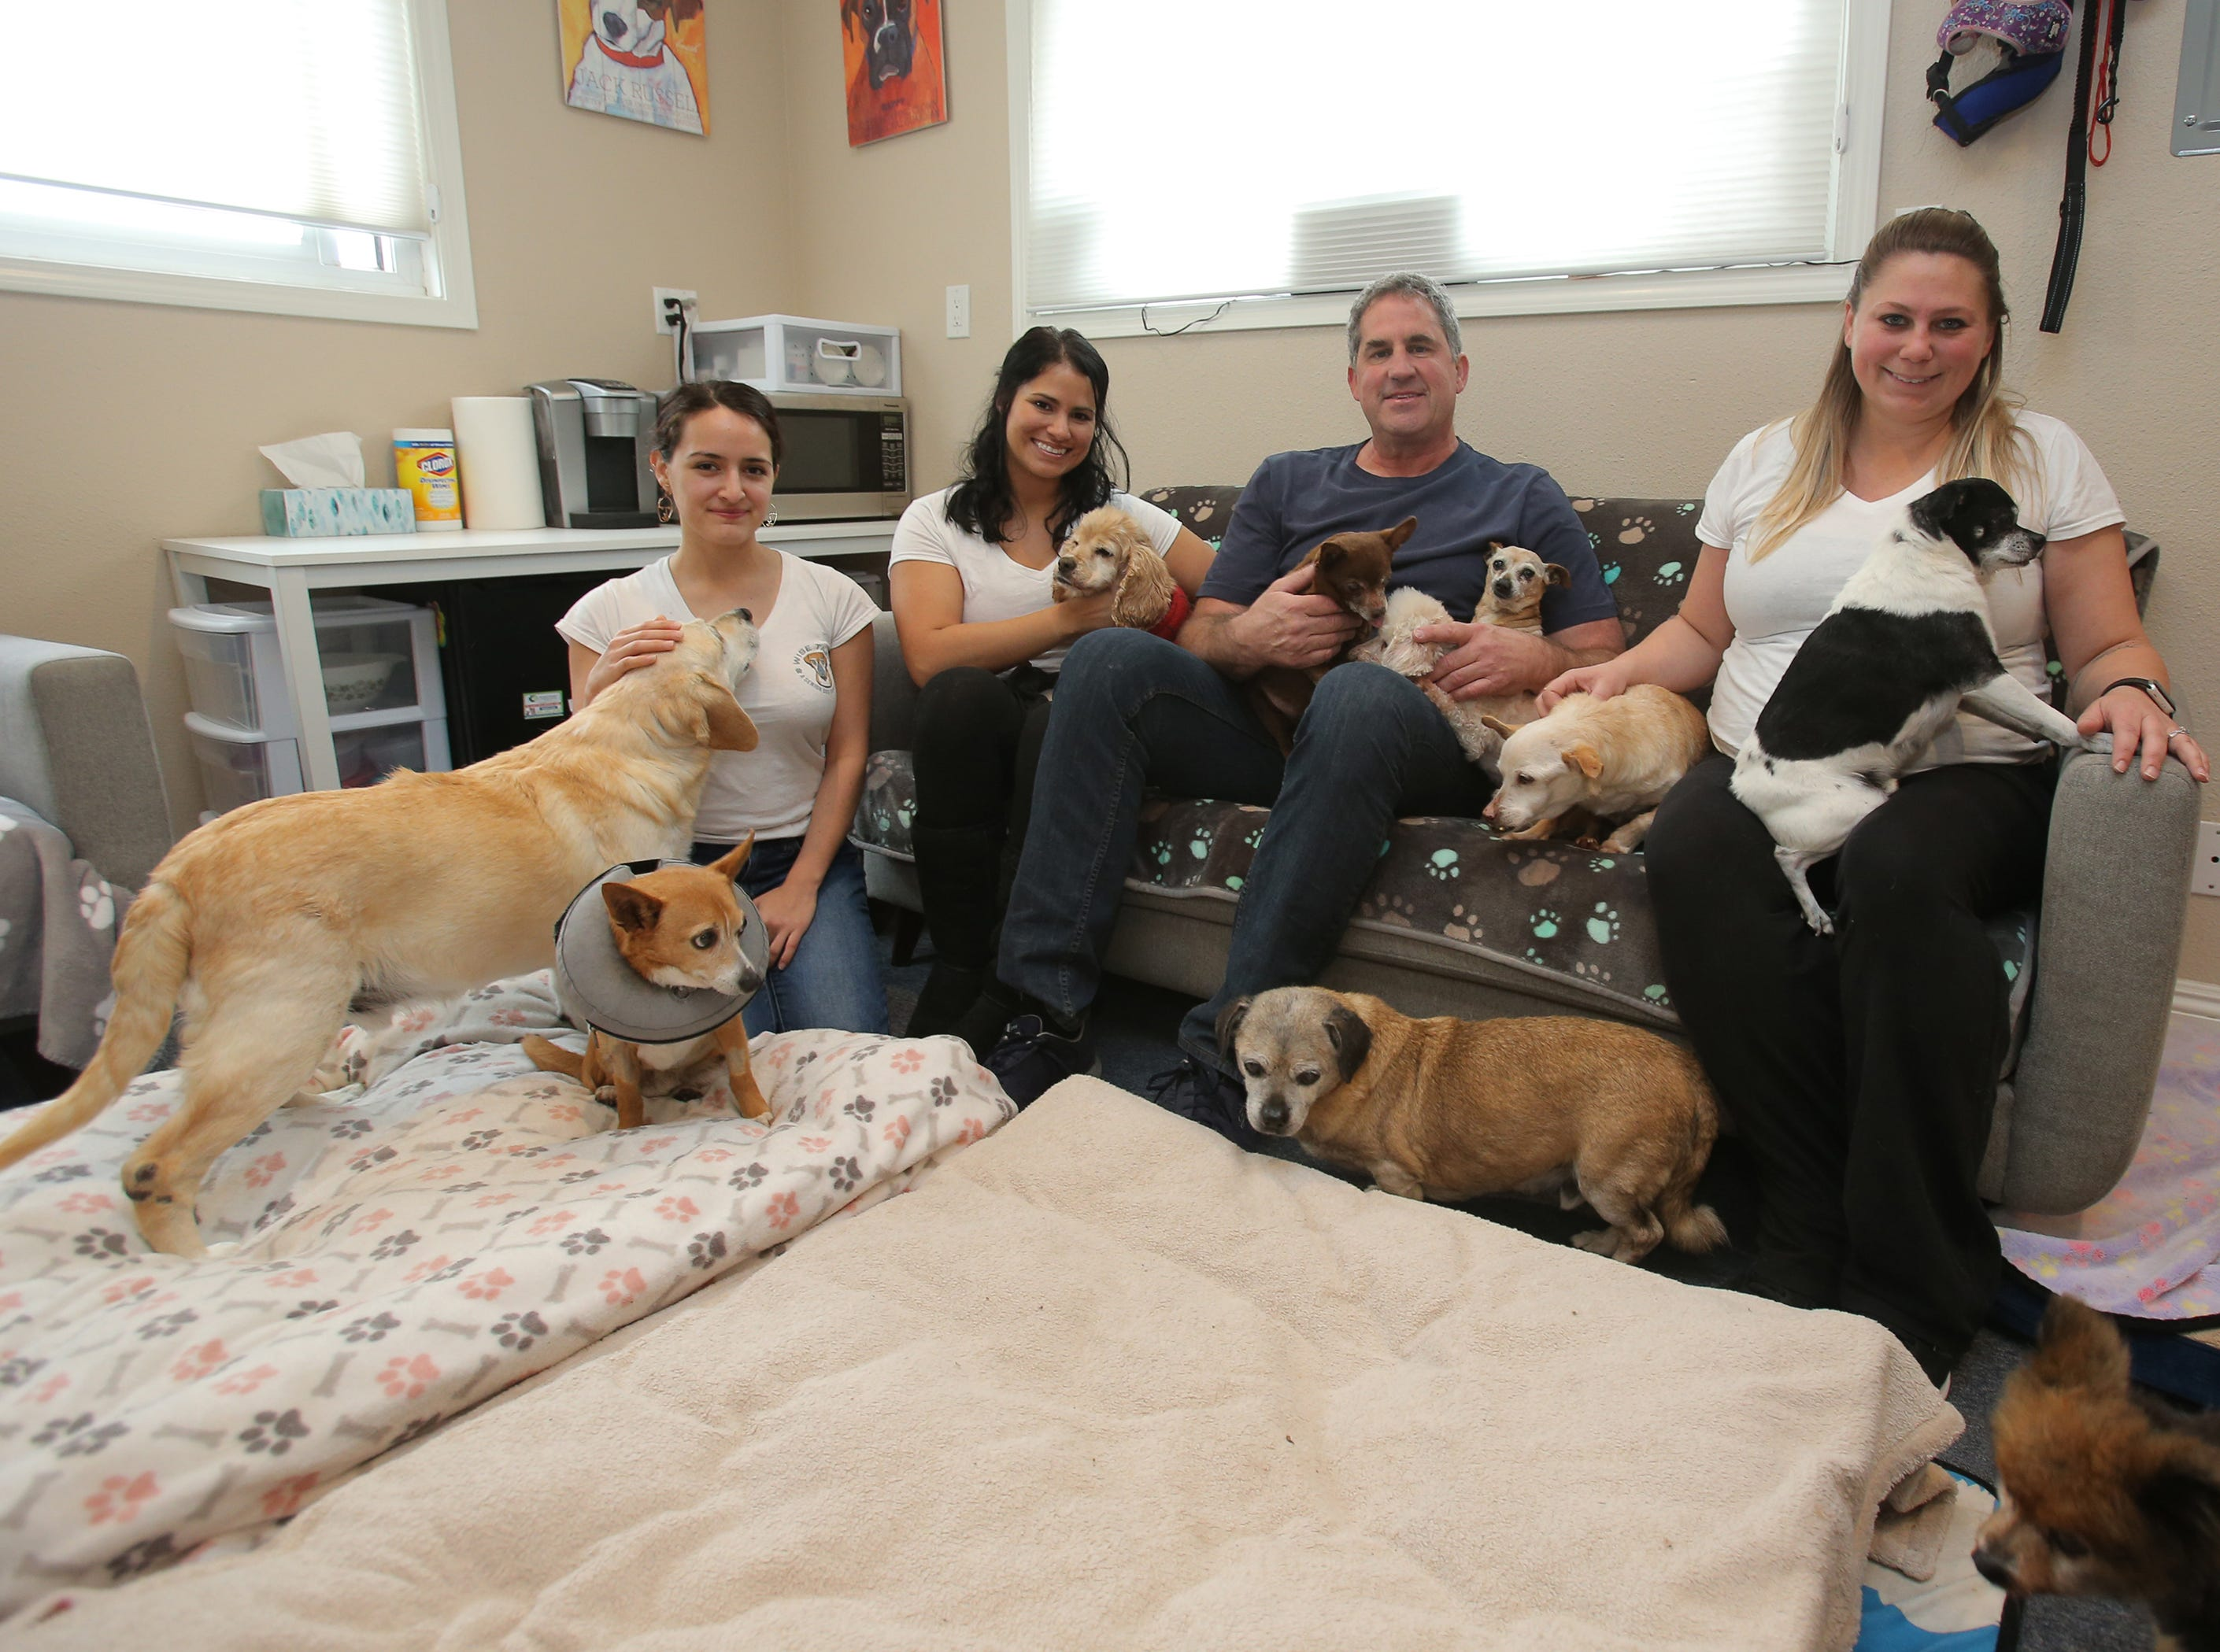 Gabby Bonilla, from left, Patty Shumway, Ted Shumway and Danielle Lady, all of Wise Tails, a senior dog sanctuary in Simi Valley, sit with some of their residents. The sanctuary is home to 20 senior dogs, most of them rescued from local animal shelters. The nonprofit is coming up on its first-year anniversary.